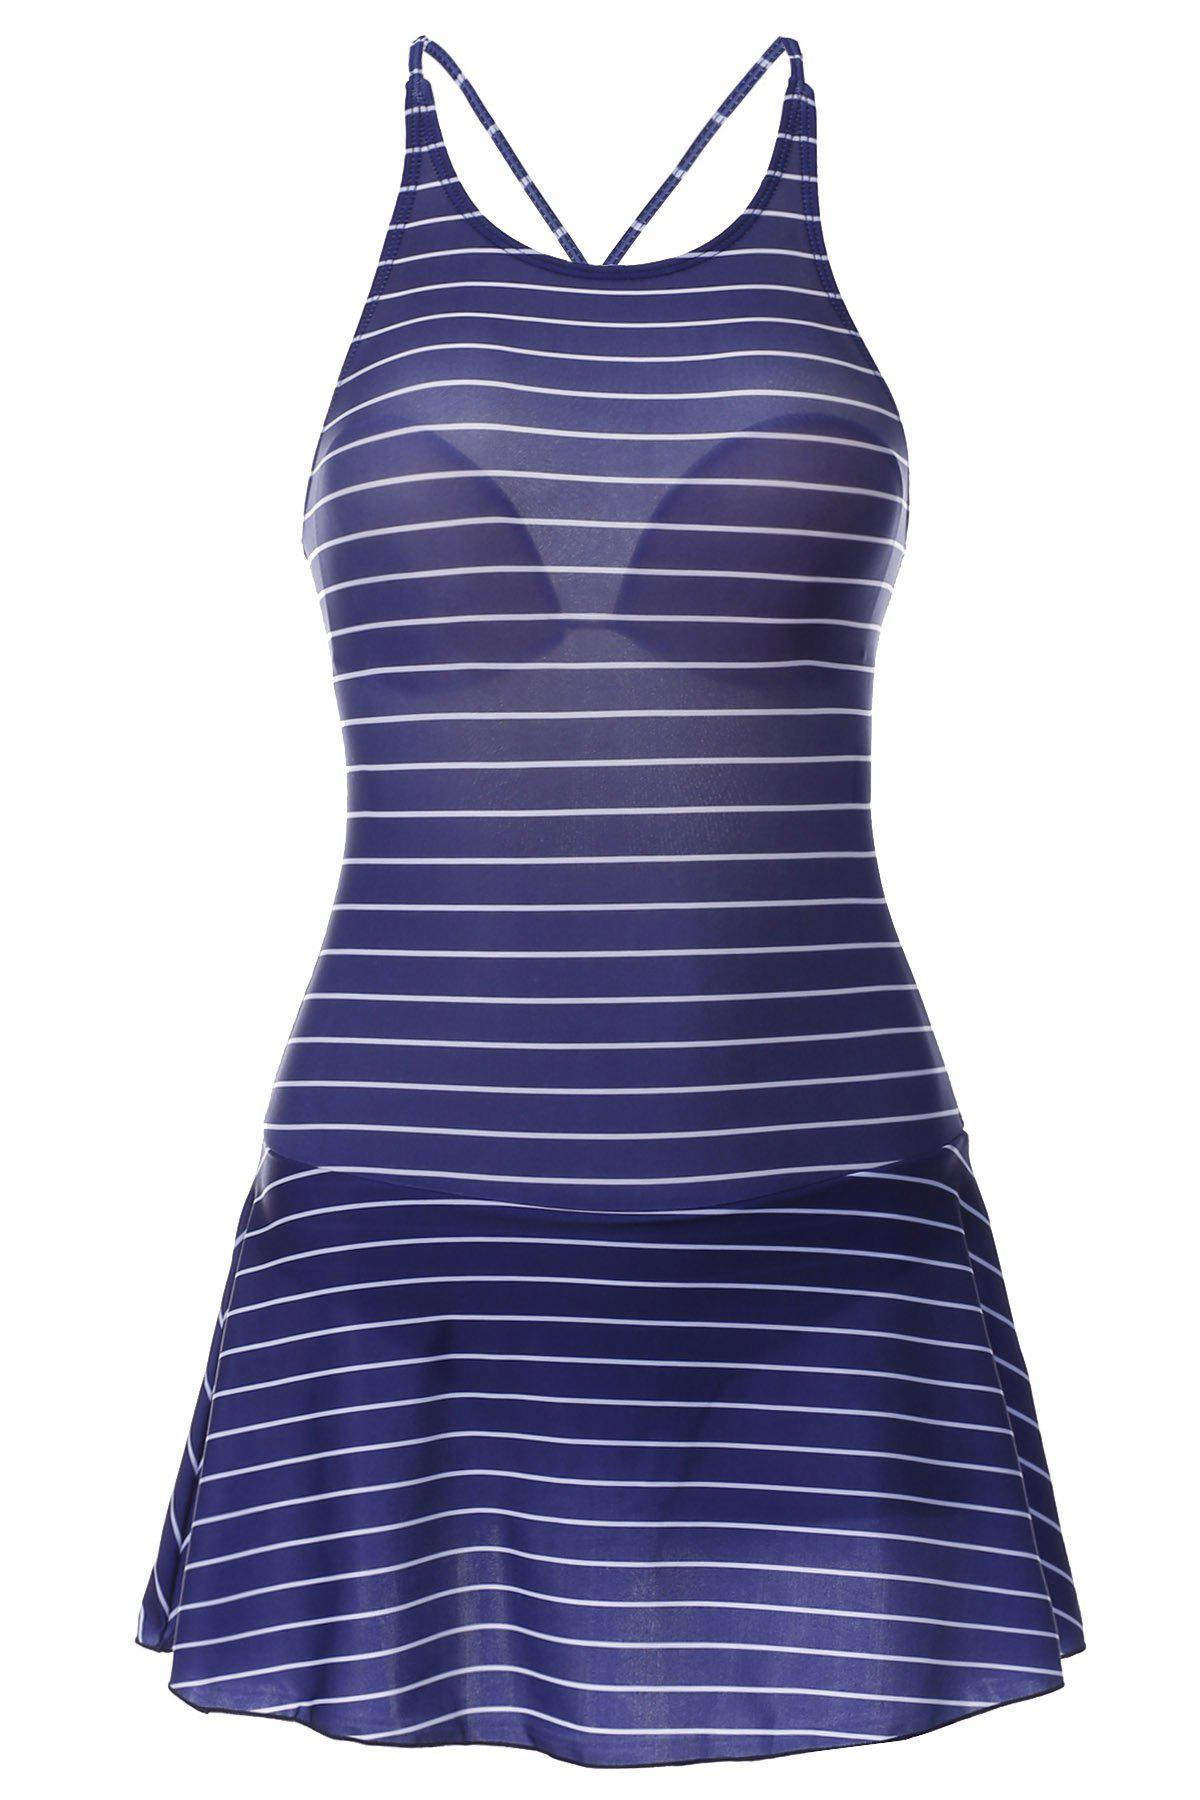 Sweet Striped Backless Flounced One-Piece Swimwear For Women - PURPLISH BLUE M